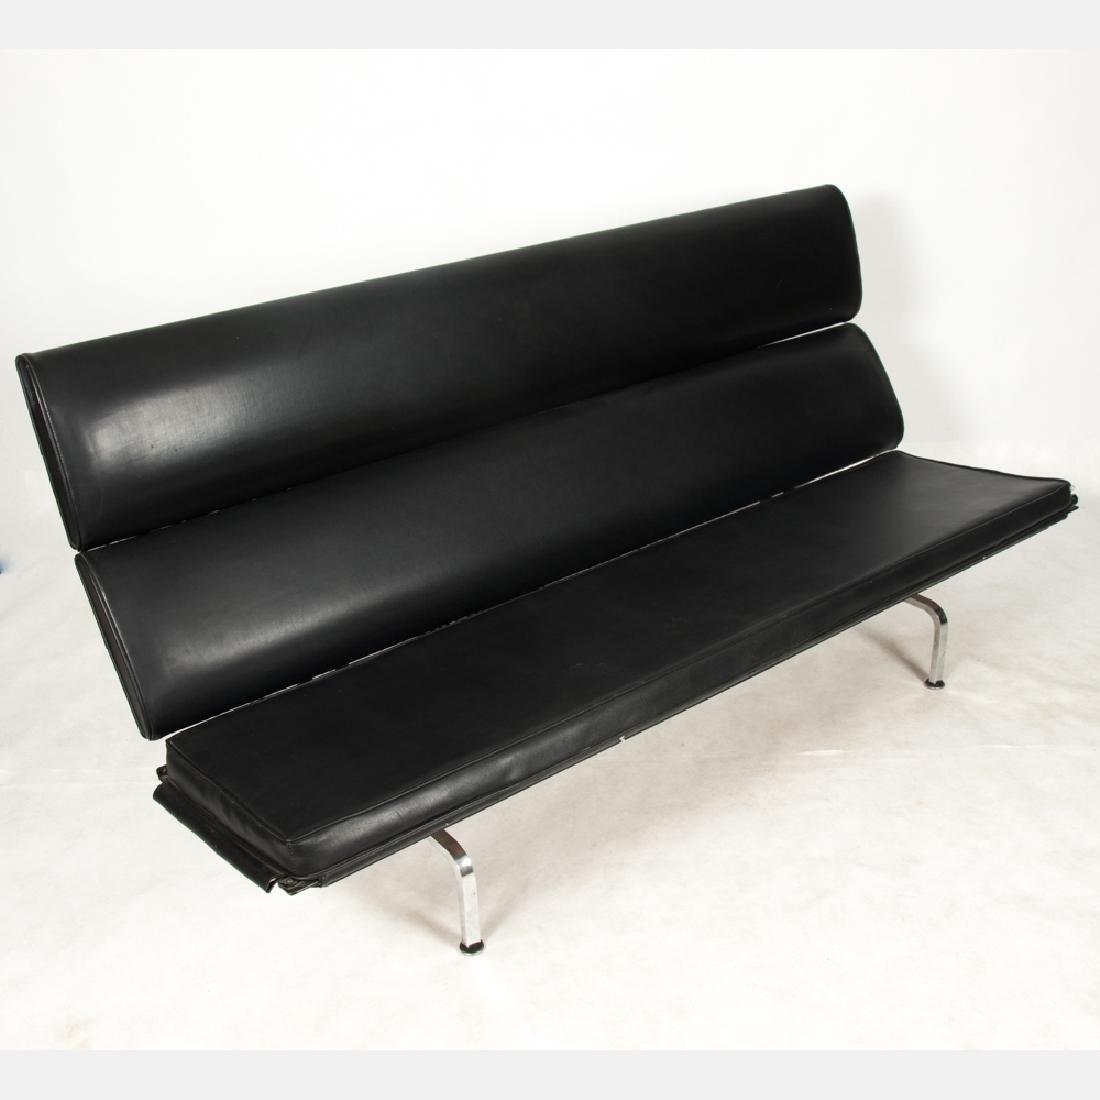 A Charles and Ray Eames Chrome and Leather Sofa